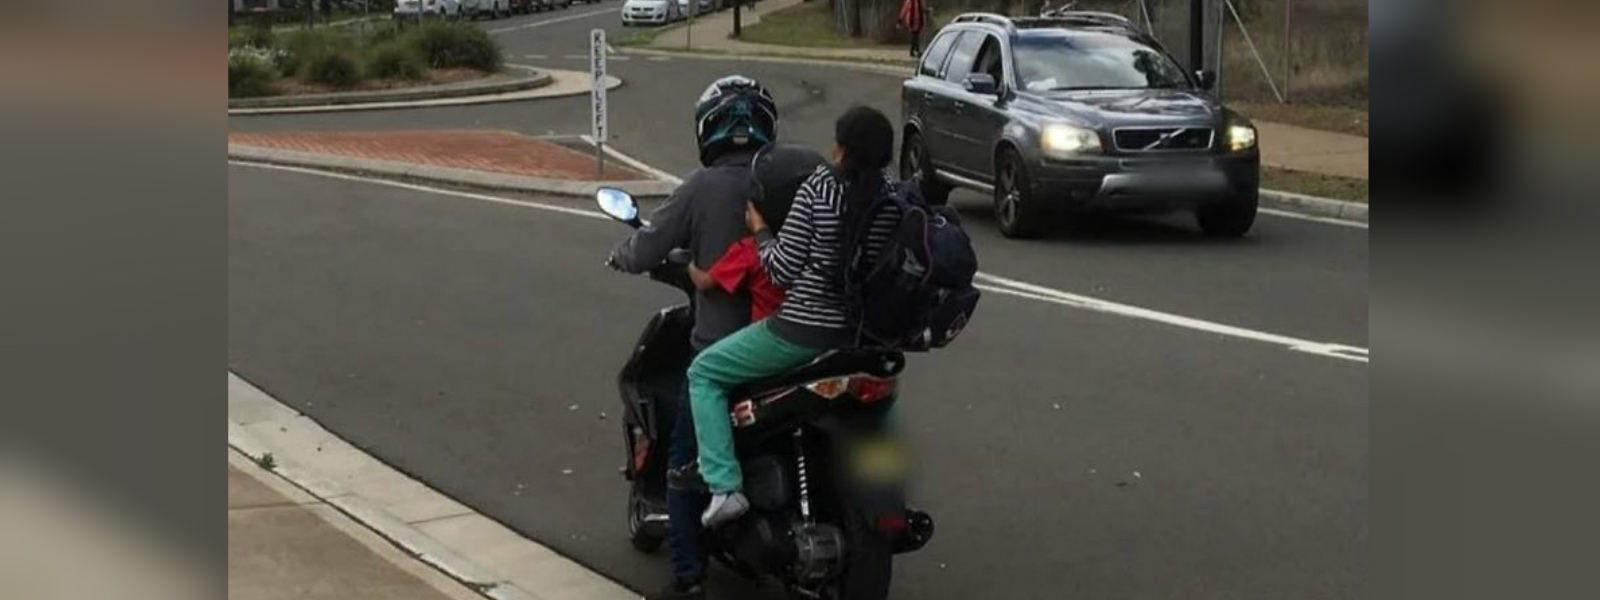 'Unaware of rules', Indian couple caught riding with a child in Sydney